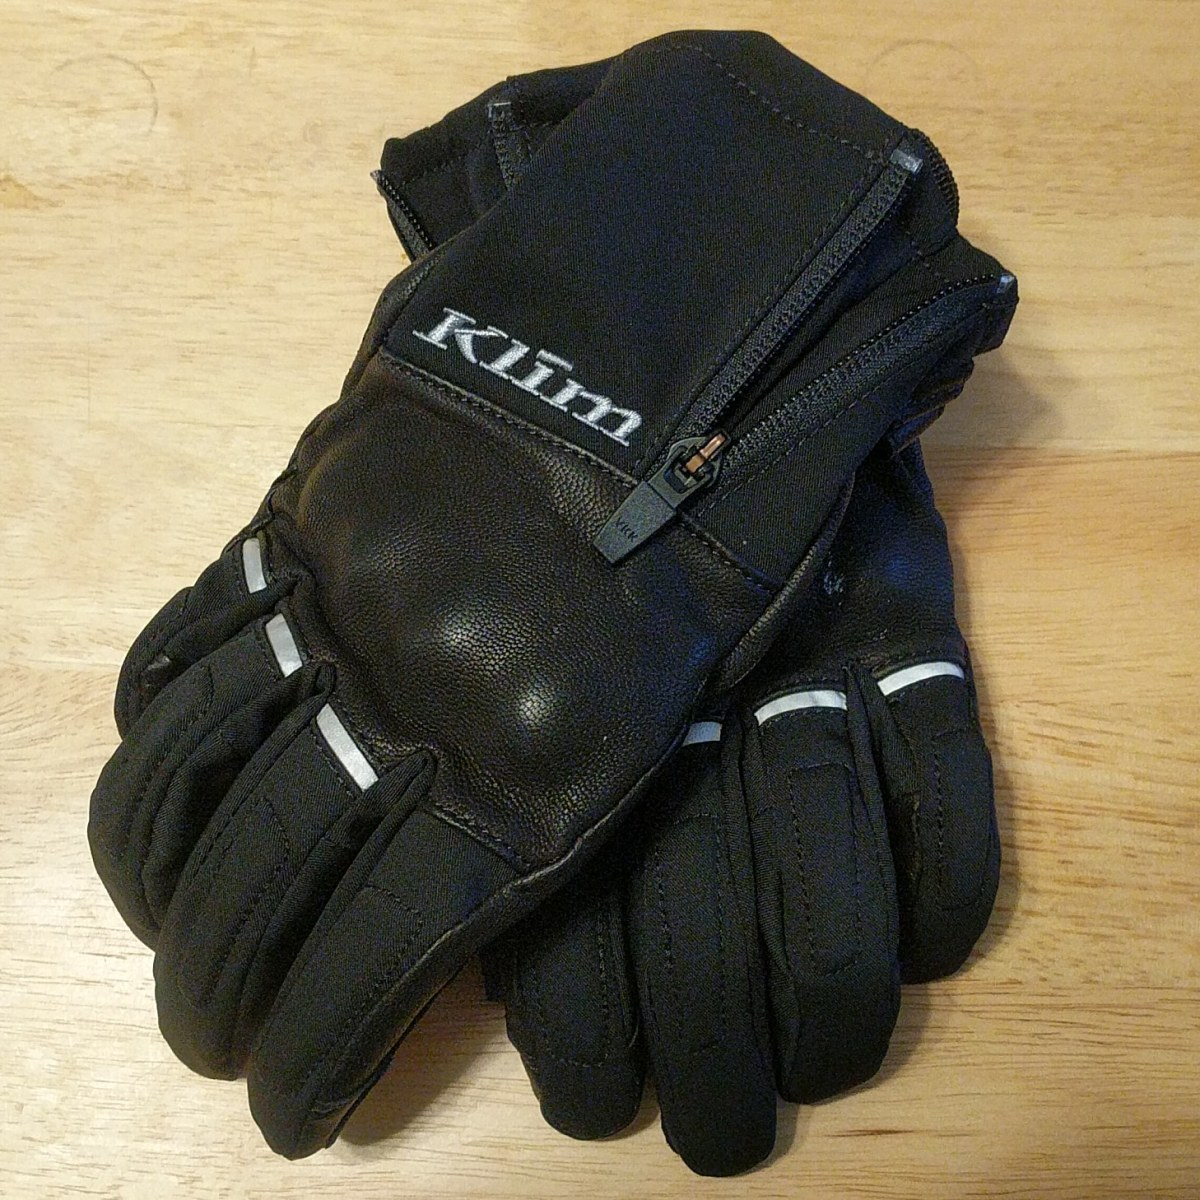 Klim Vanguard GTX Short Gloves - Gear Review